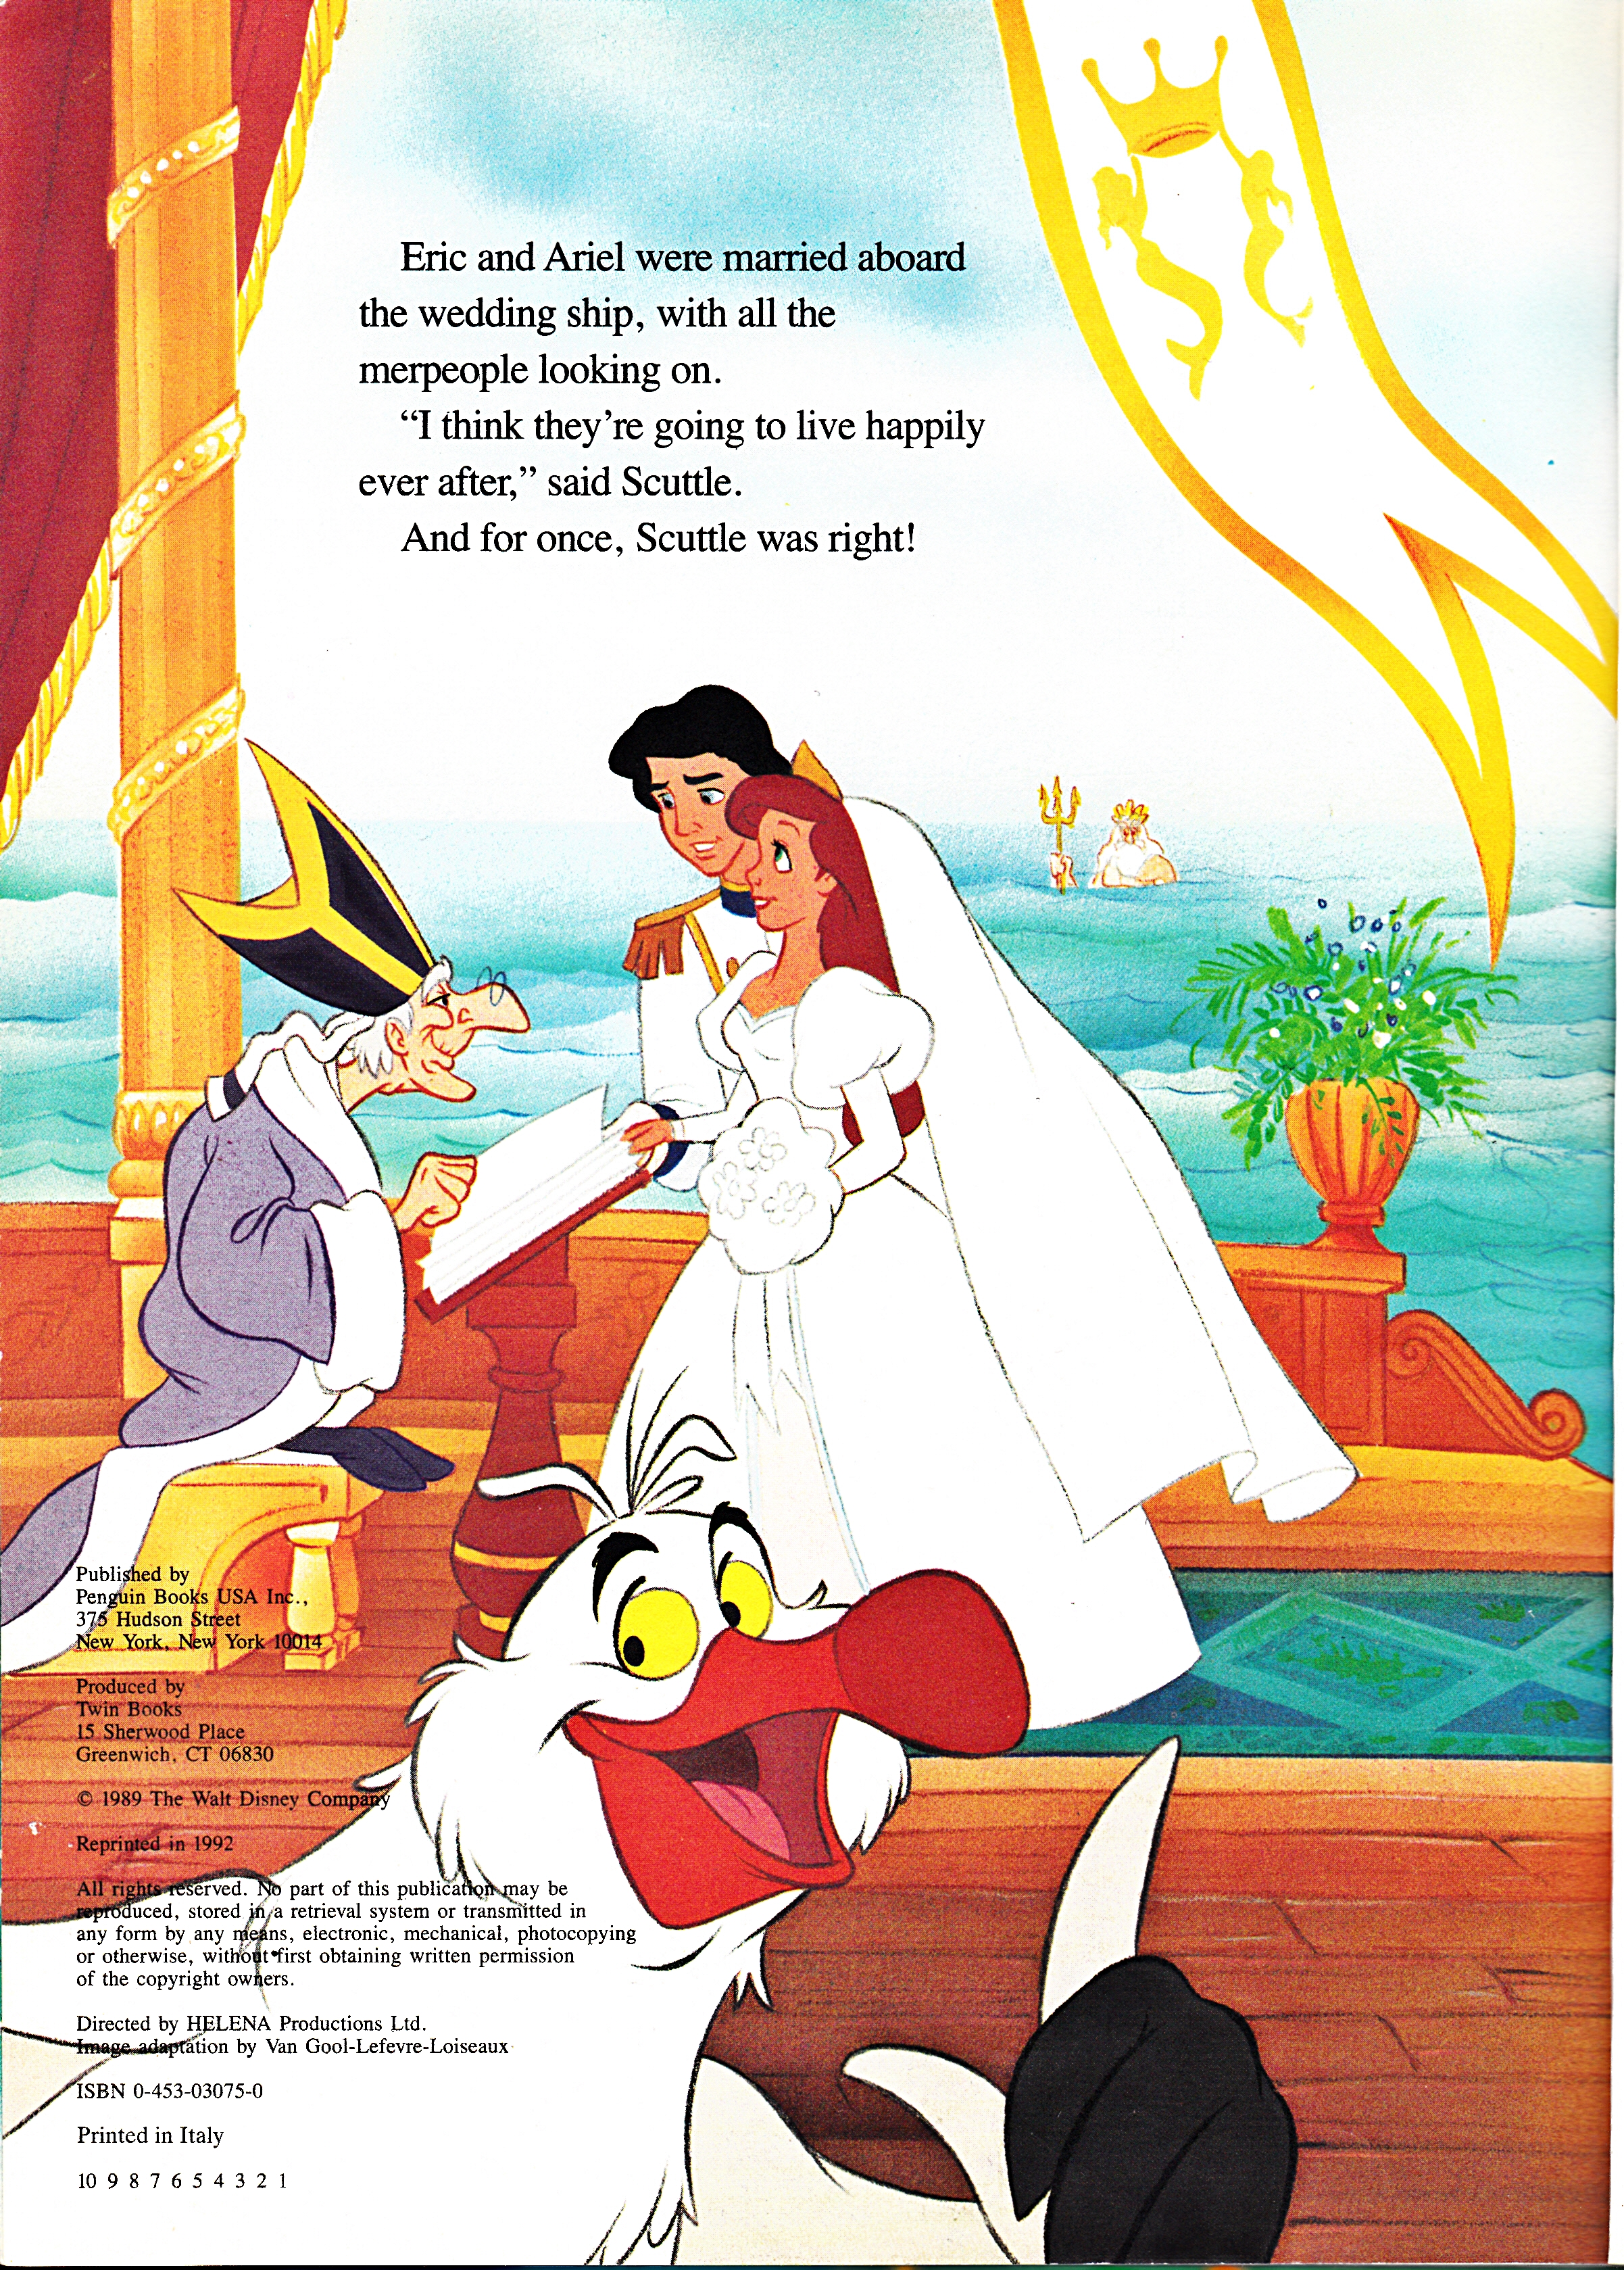 Walt Disney Book Images The Priest Prince Eric